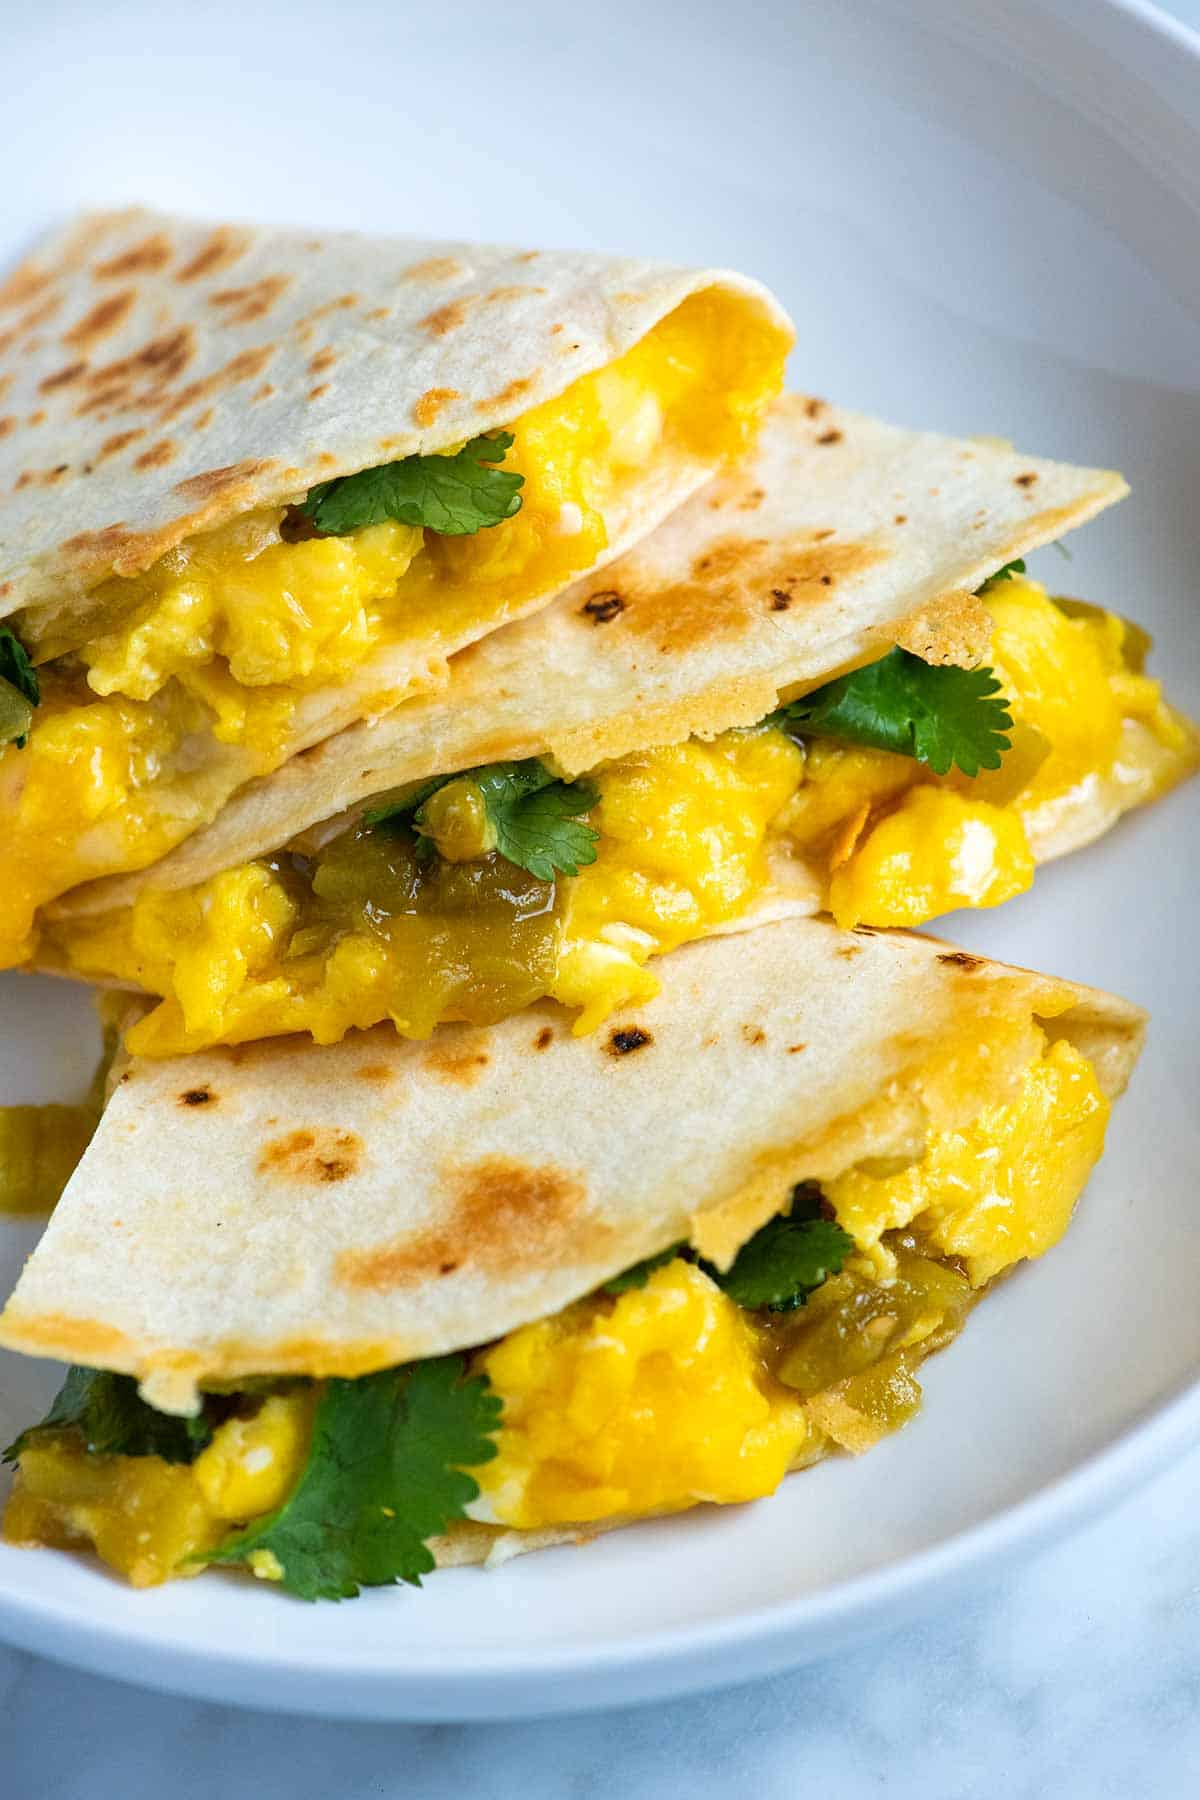 Breakfast Quesadillas with eggs, chilies and cheese